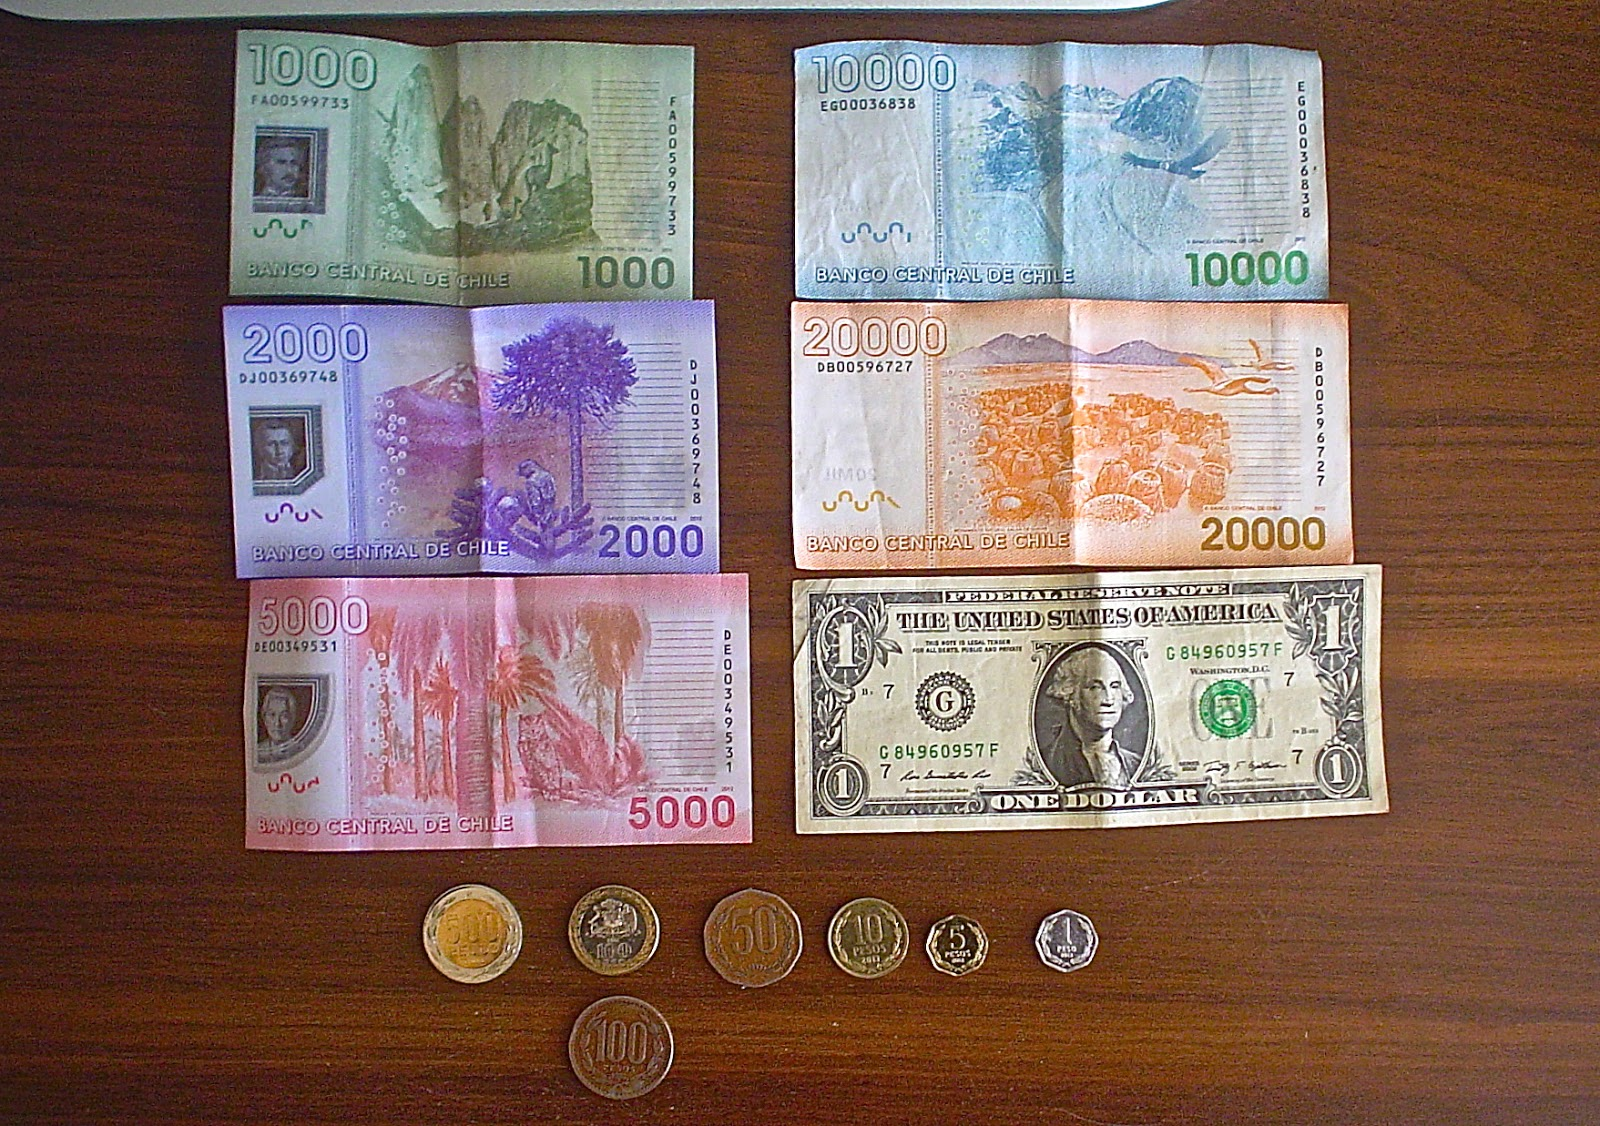 Notice How The Bills Are Diffe Lengths In Addition To Being Colors I Think My Favorite Is Purple 2 000 Note About 3 70 Us Dollars